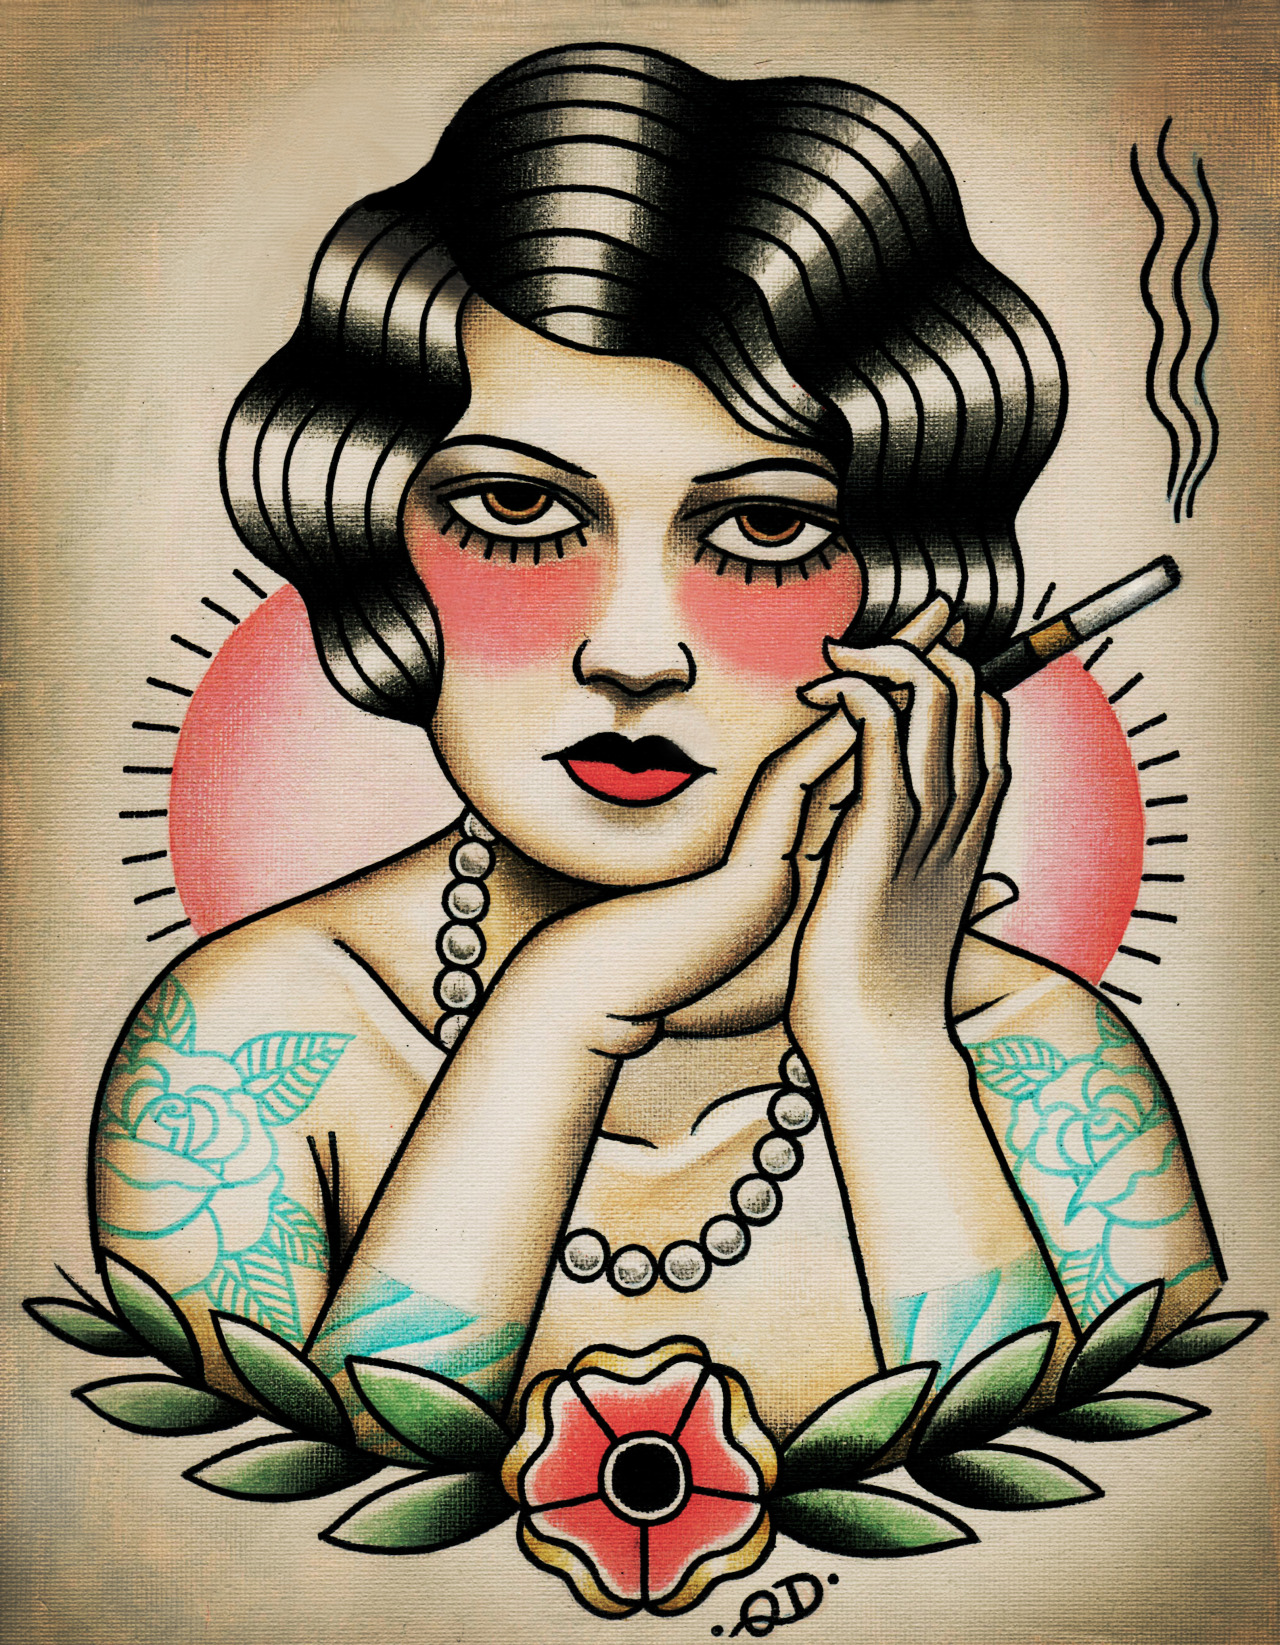 New Smoking Flapper print on Etsy Quyen Dinh